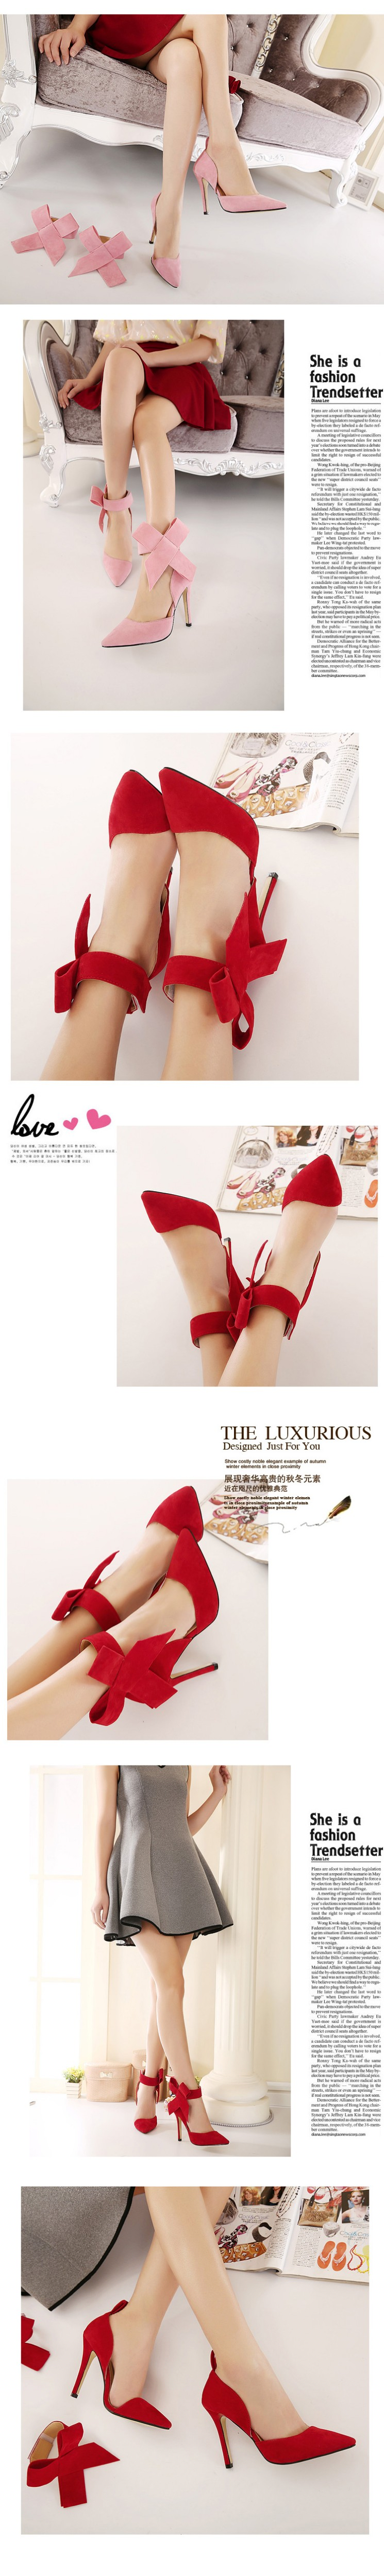 New Thin High Heels Women Pumps Sexy Pointed Toe Removable Bowtie Party Shoes New Ladies Stiletto Shoes Plus Size 40 41 ZX2.5